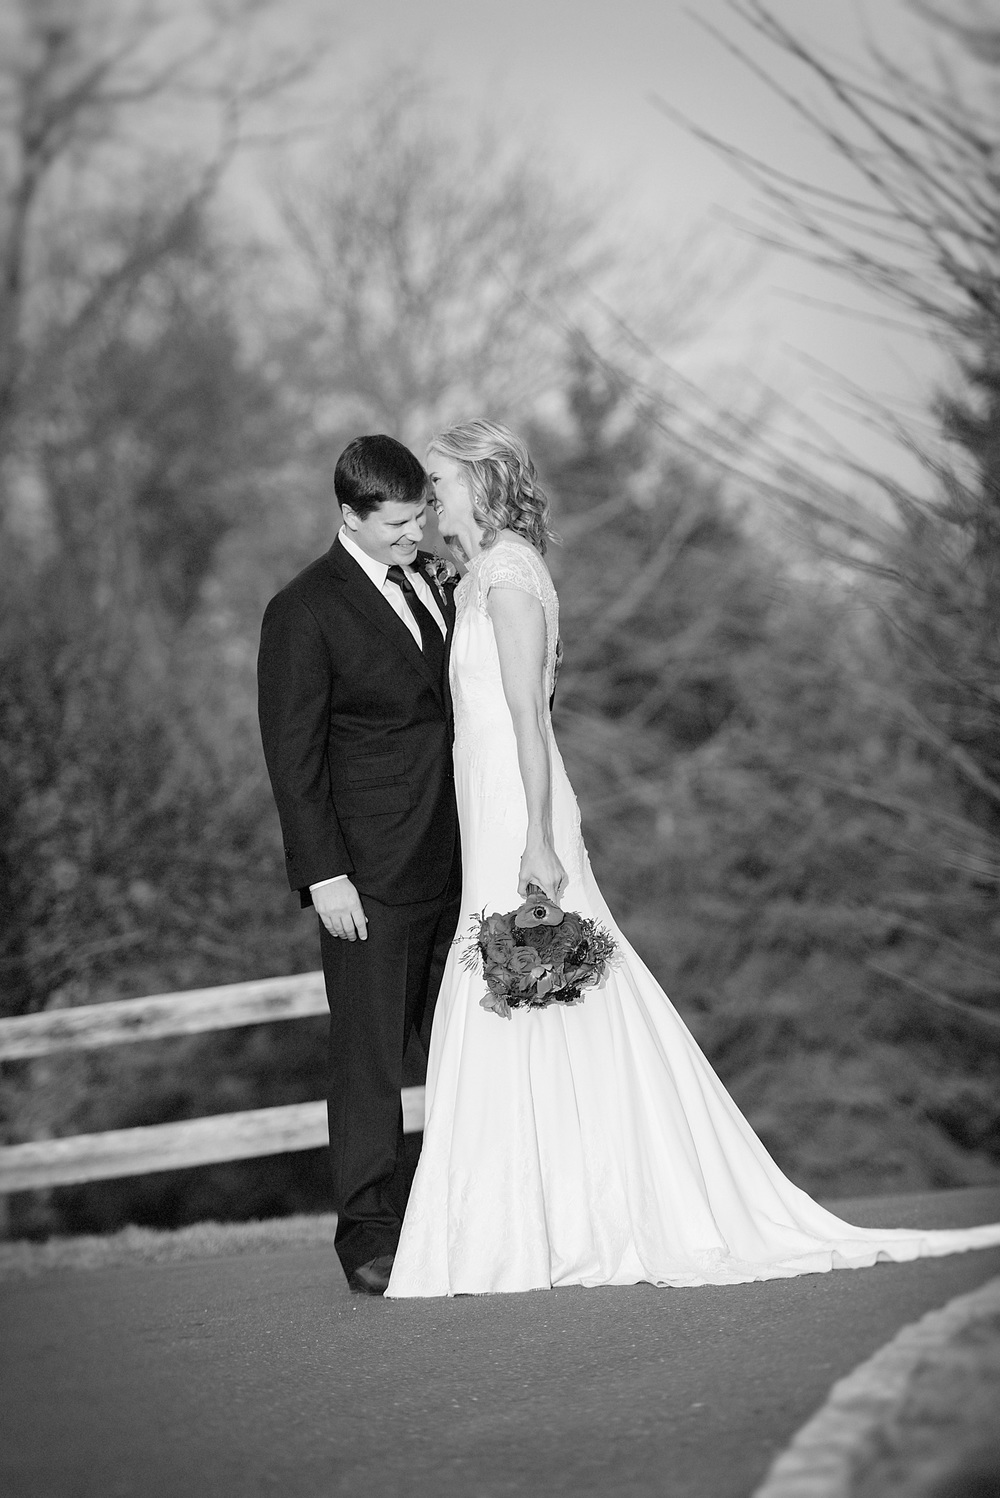 winter wedding laughter black white portrait bride groom countryclub sunset san ramon ©ninapomeroy.com